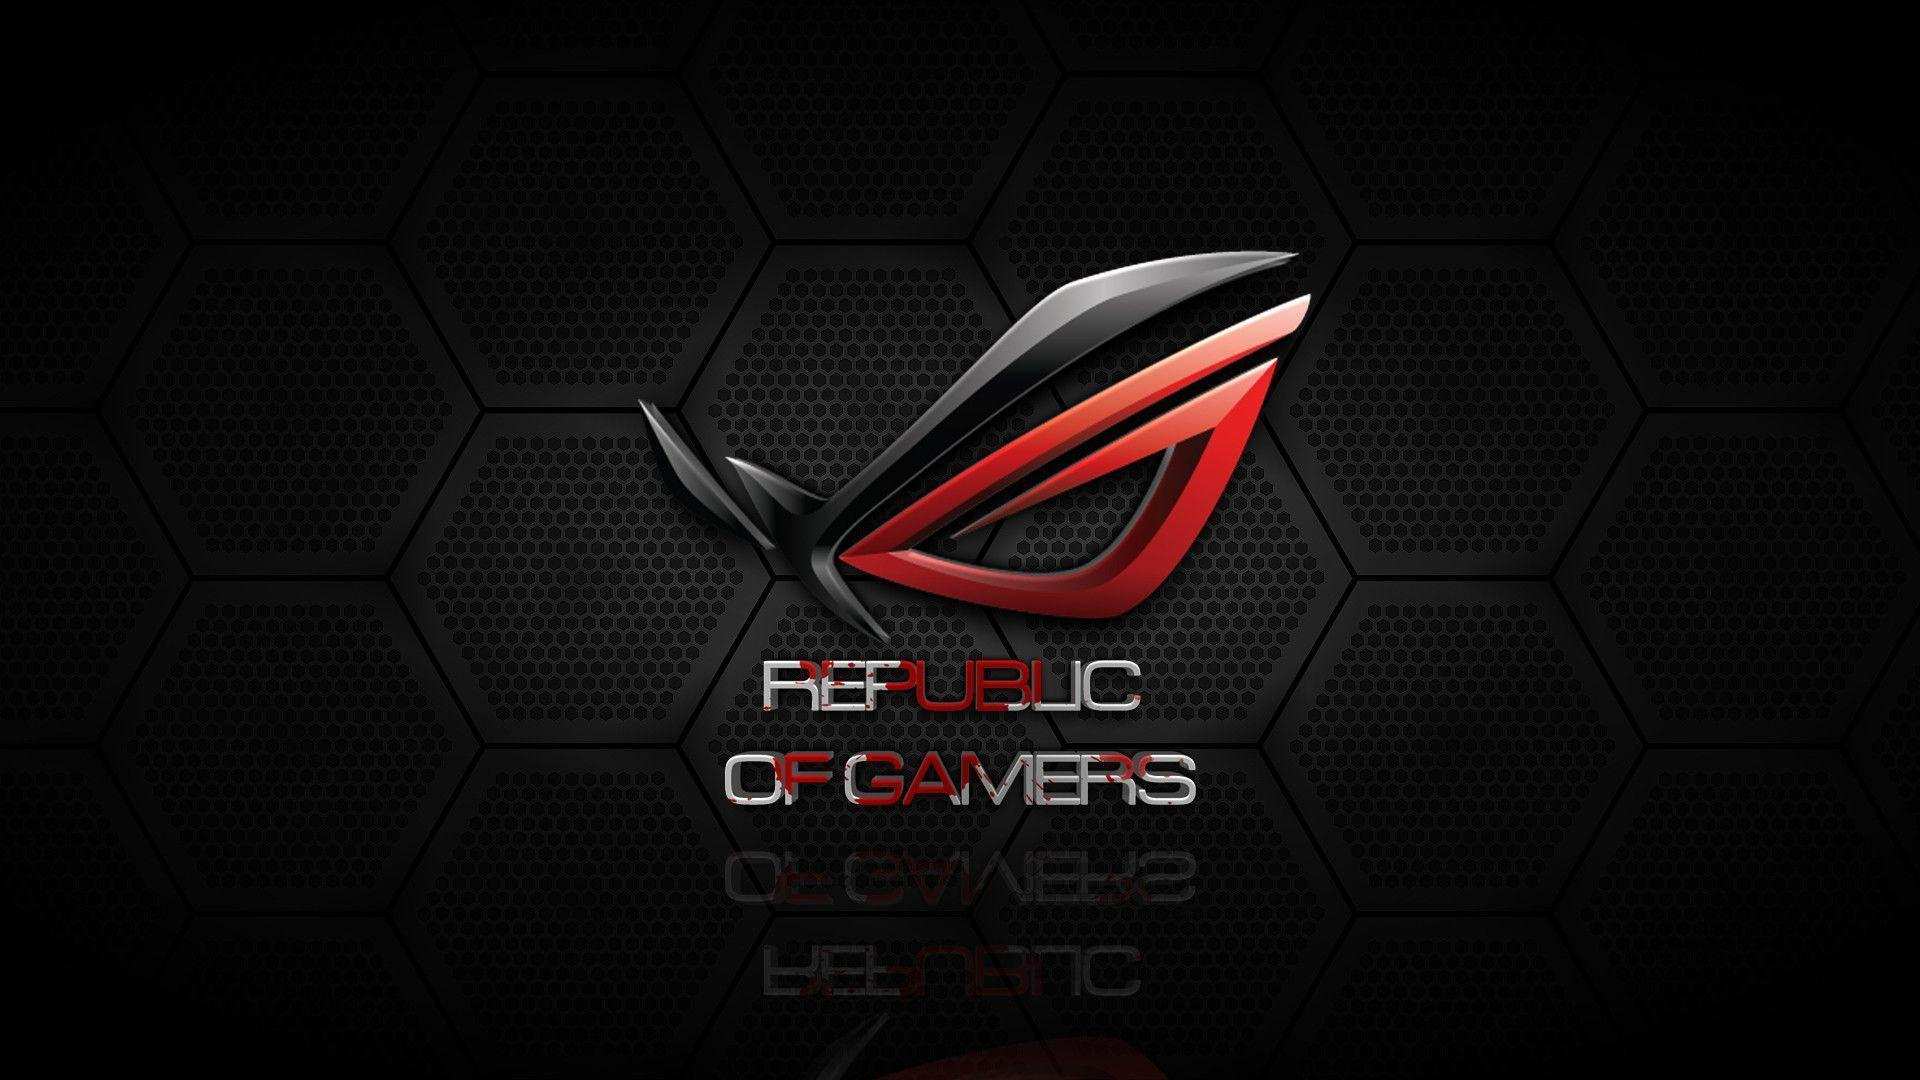 Image Result For Asus Rog Strix X E Gaming Rog Republic Of